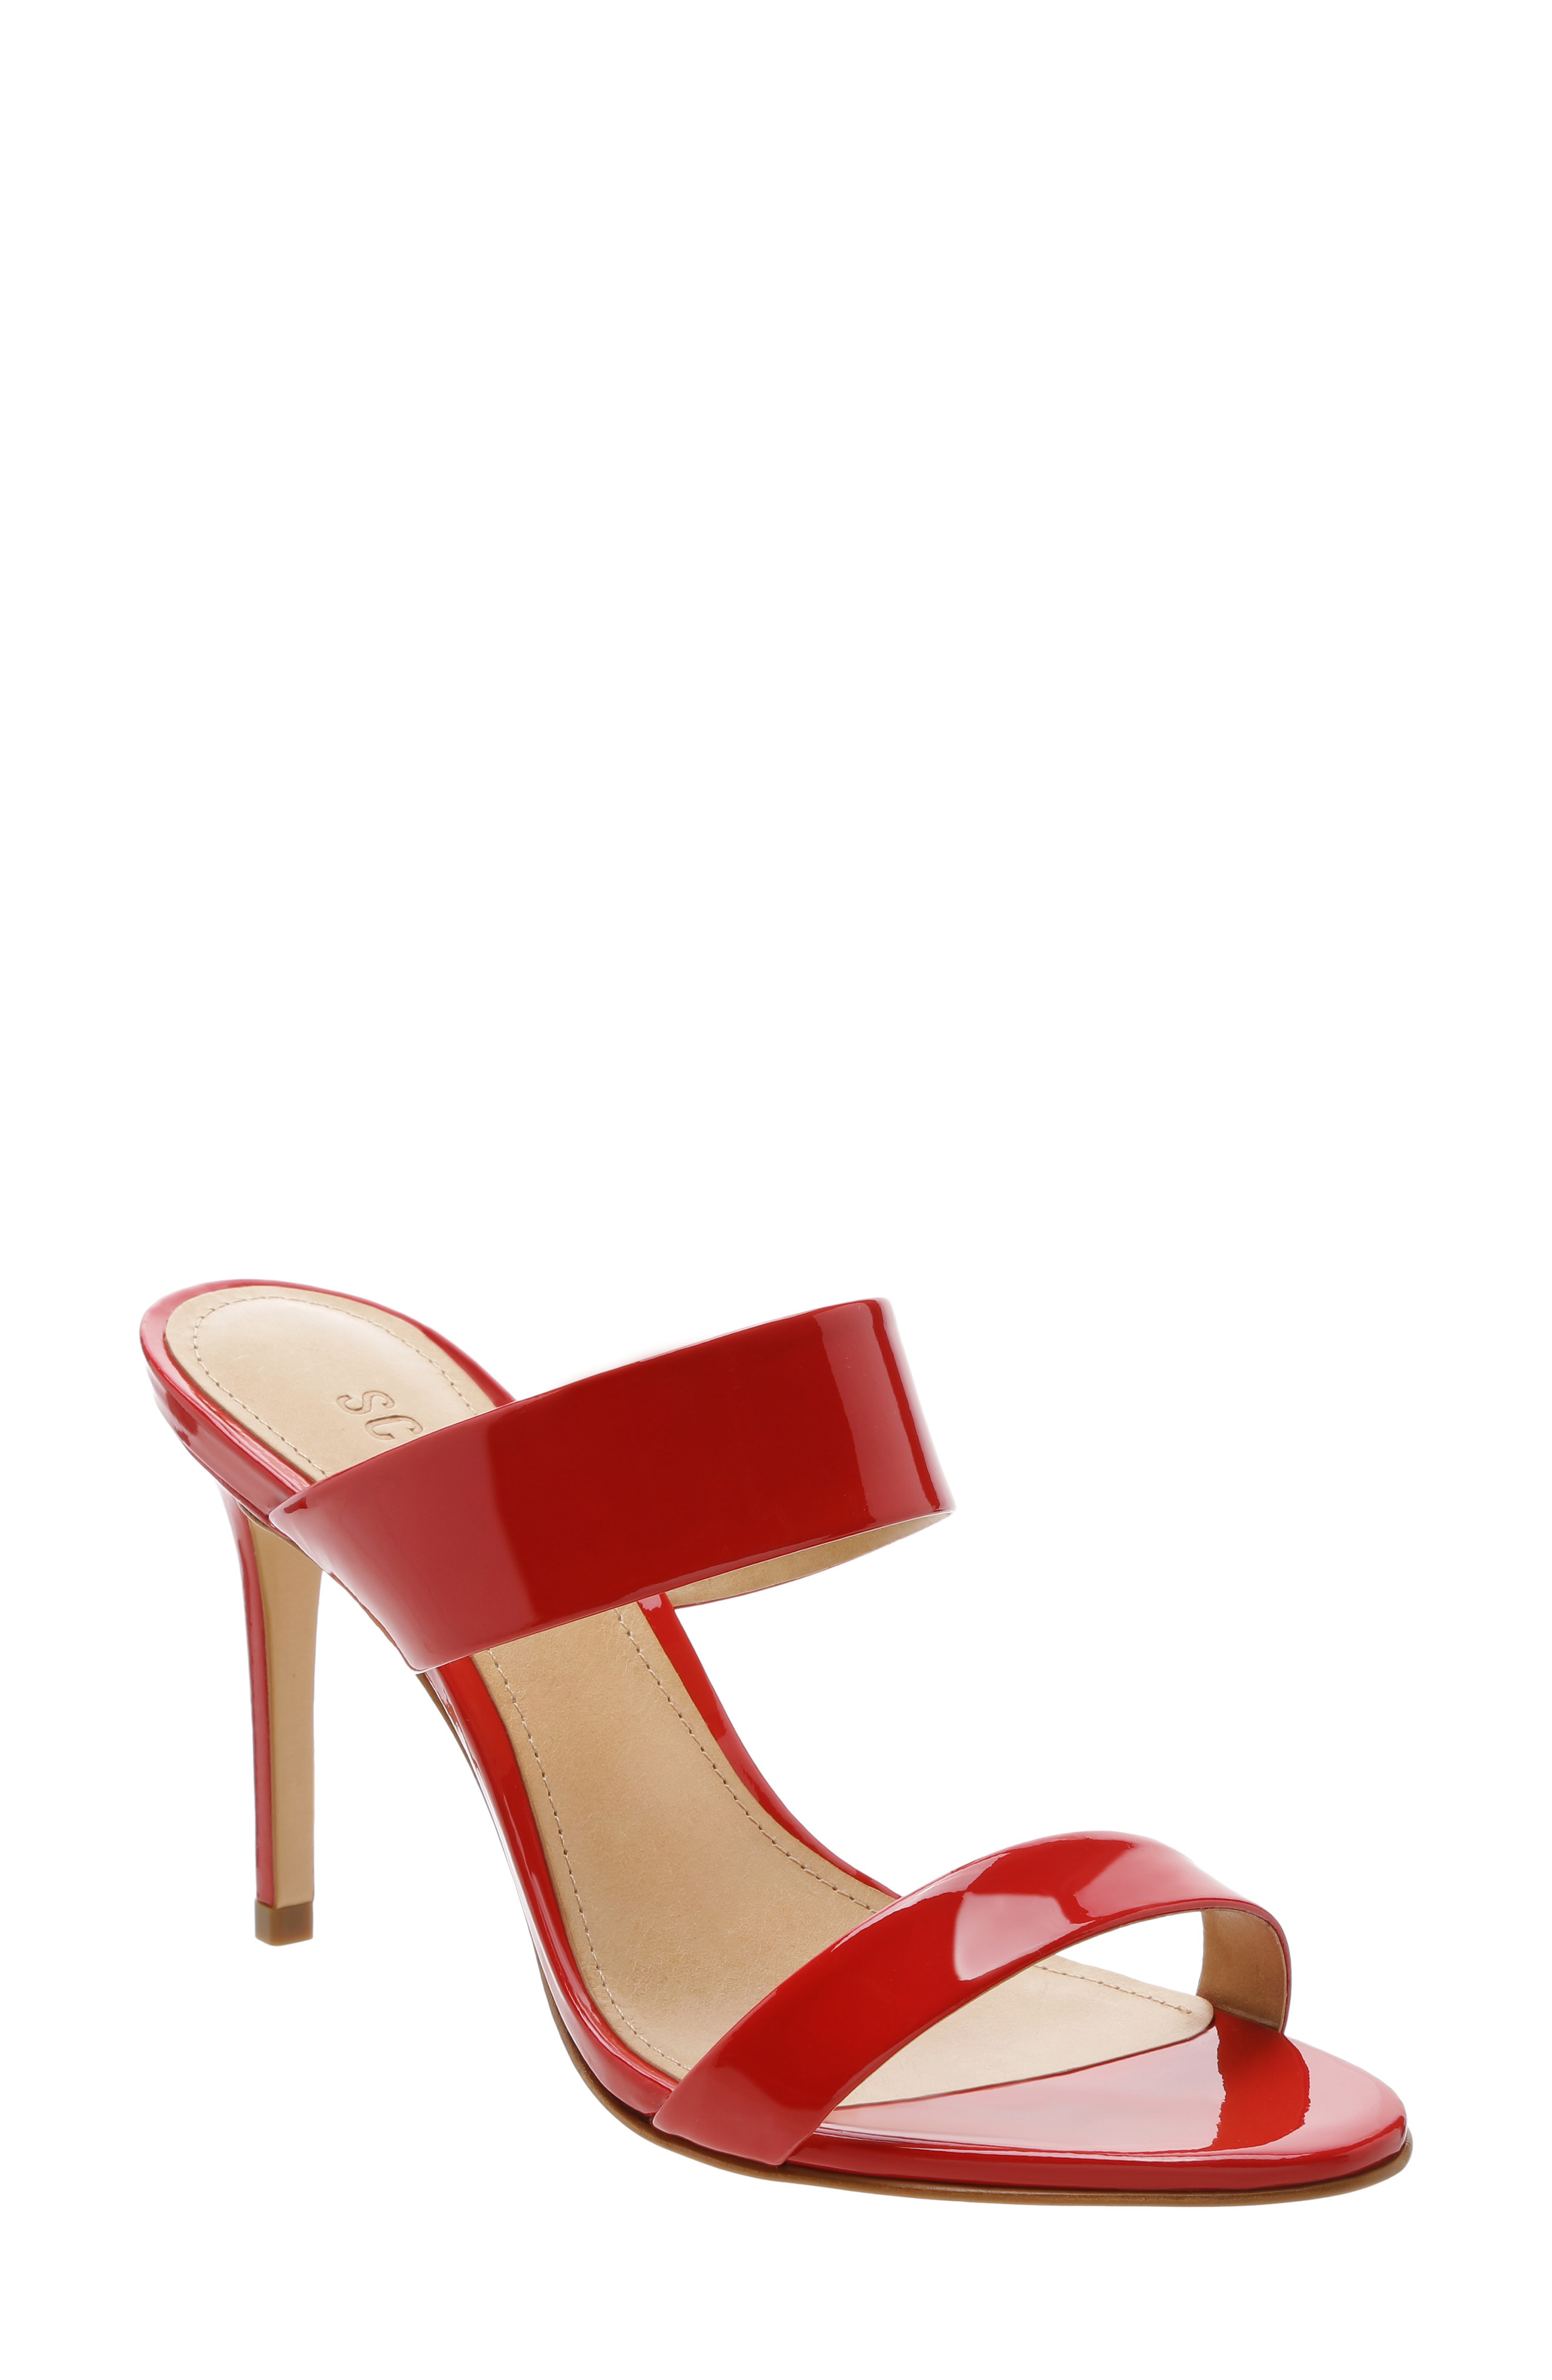 334bb68dc9a Women'S Leia High-Heel Sandals in Club Red Patent Leather